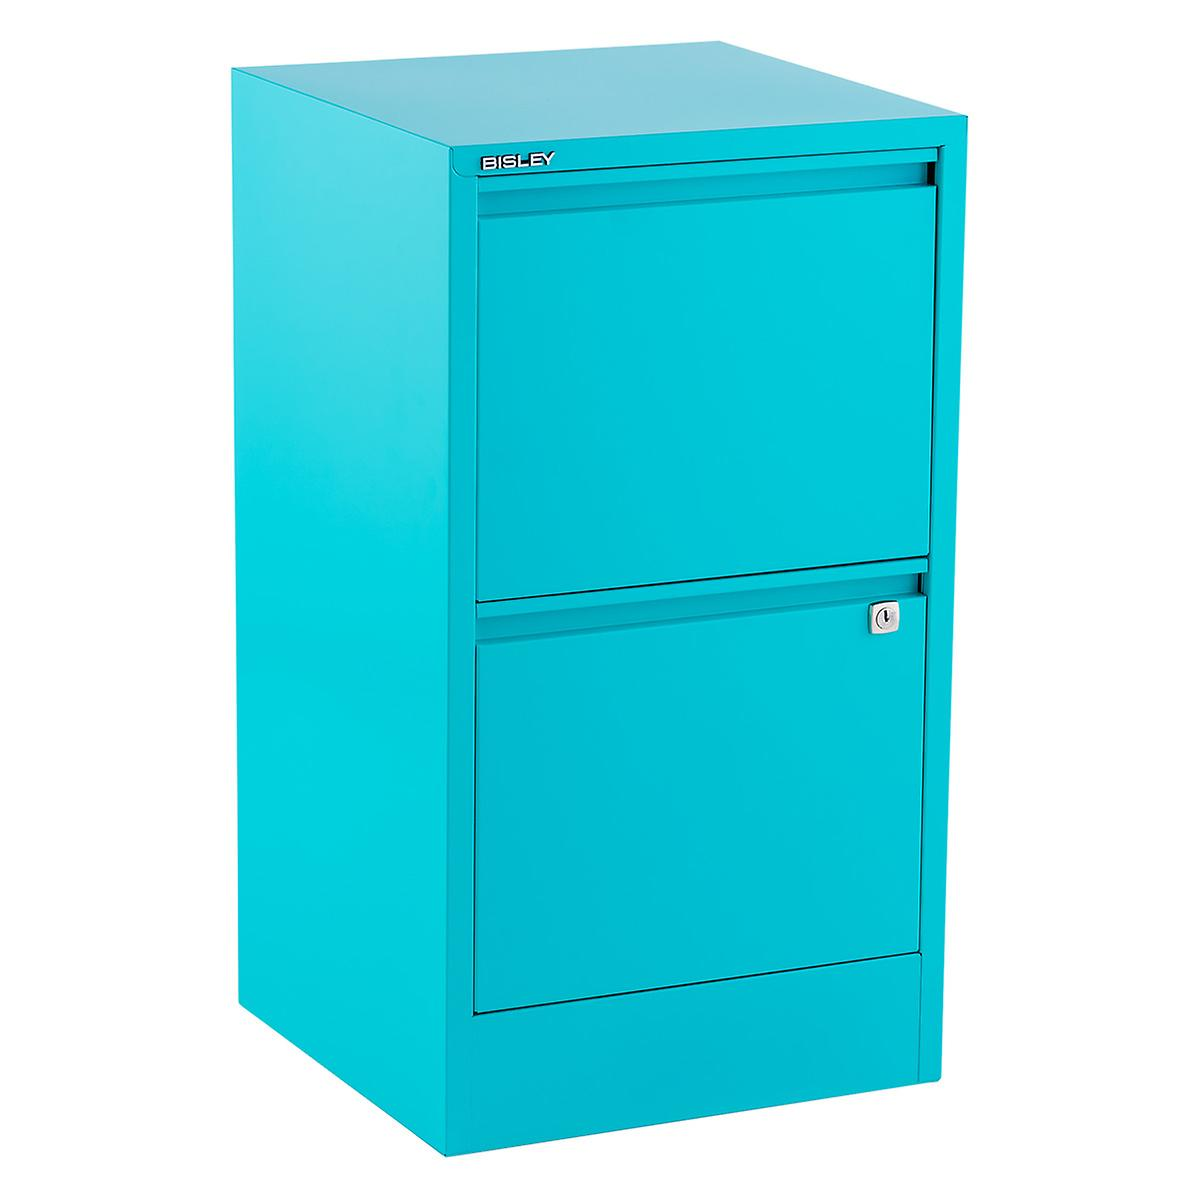 1b5b836e5b6 ... 3-Drawer Locking Filing Cabinets ·   ·  . Roll over to zoom